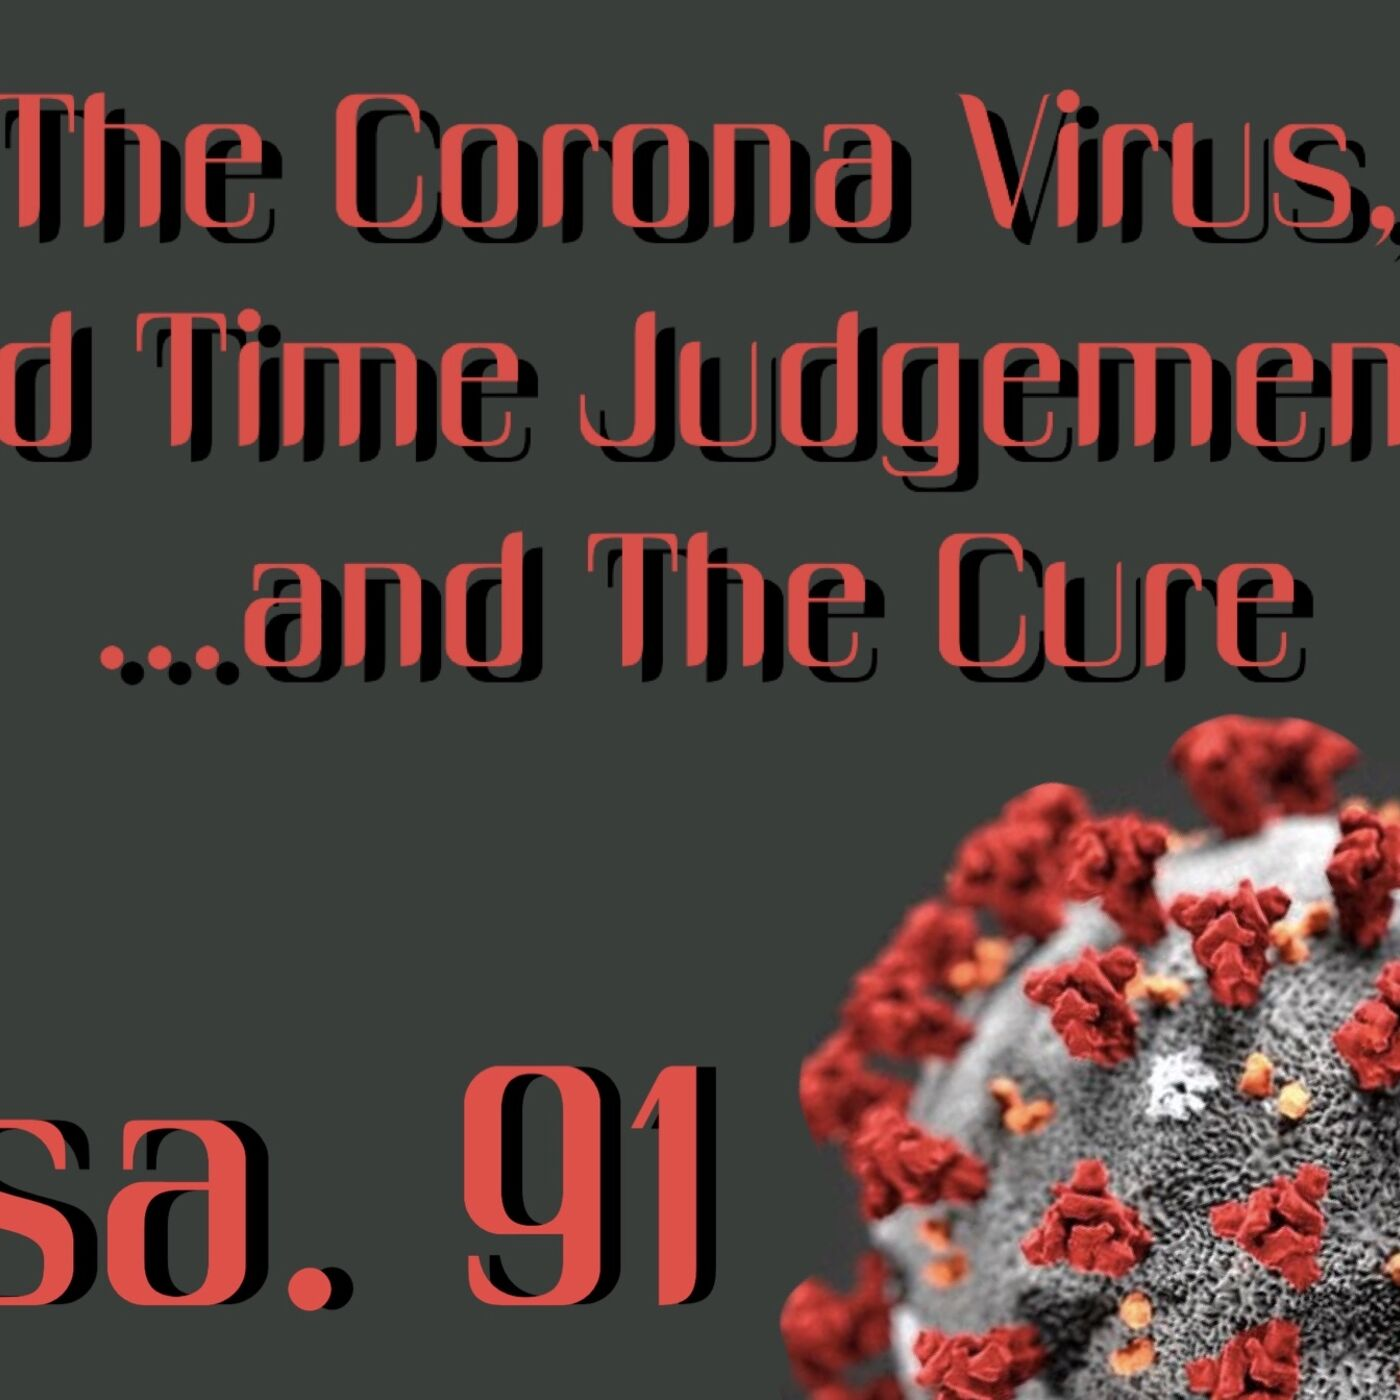 Coronavirus, End Time Judgement, and the Cure